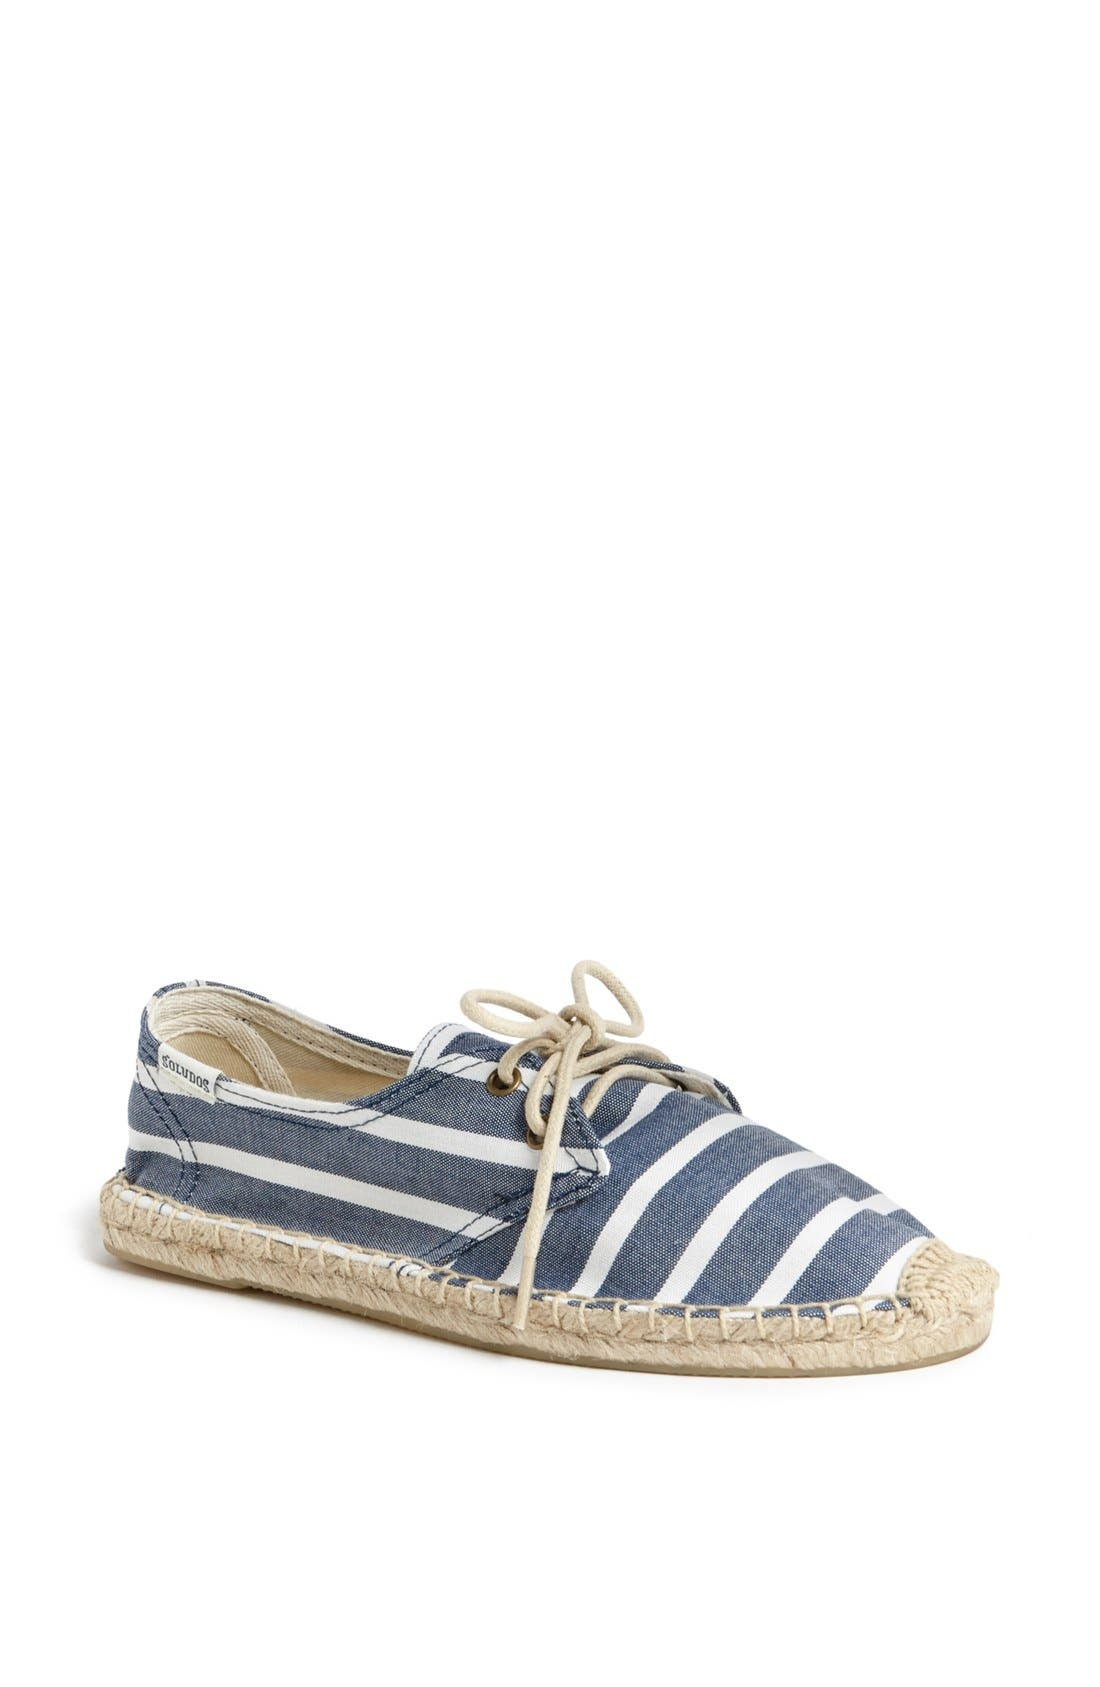 Alternate Image 1 Selected - Soludos 'Derby - Classic Stripe' Espadrille Sneaker (Women)